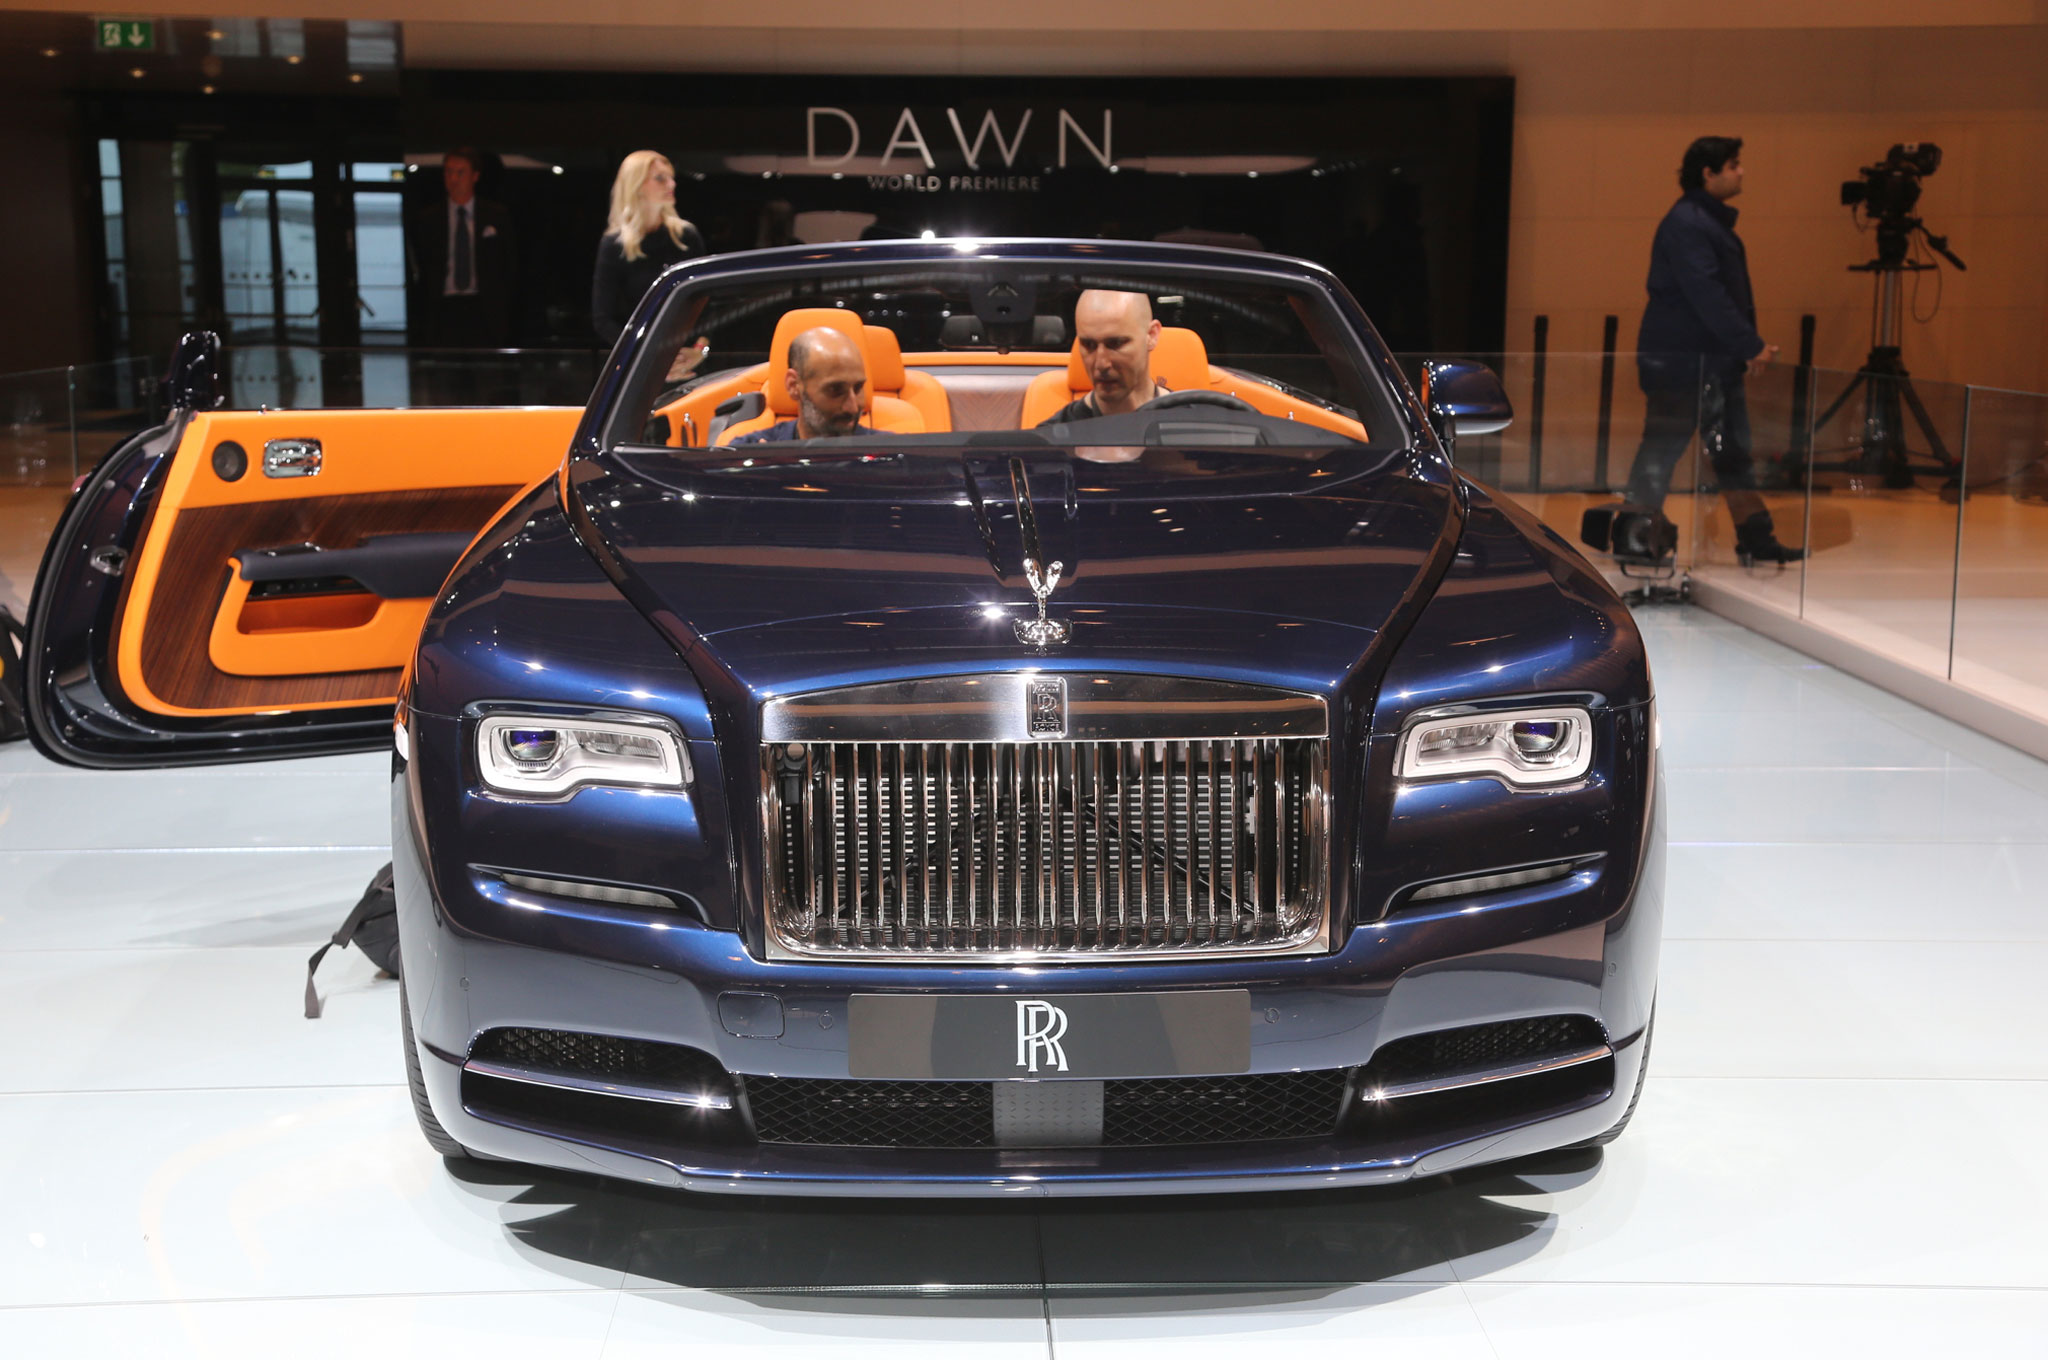 2017 Rolls Royce Dawn Brings Open Top Ultra Luxury To